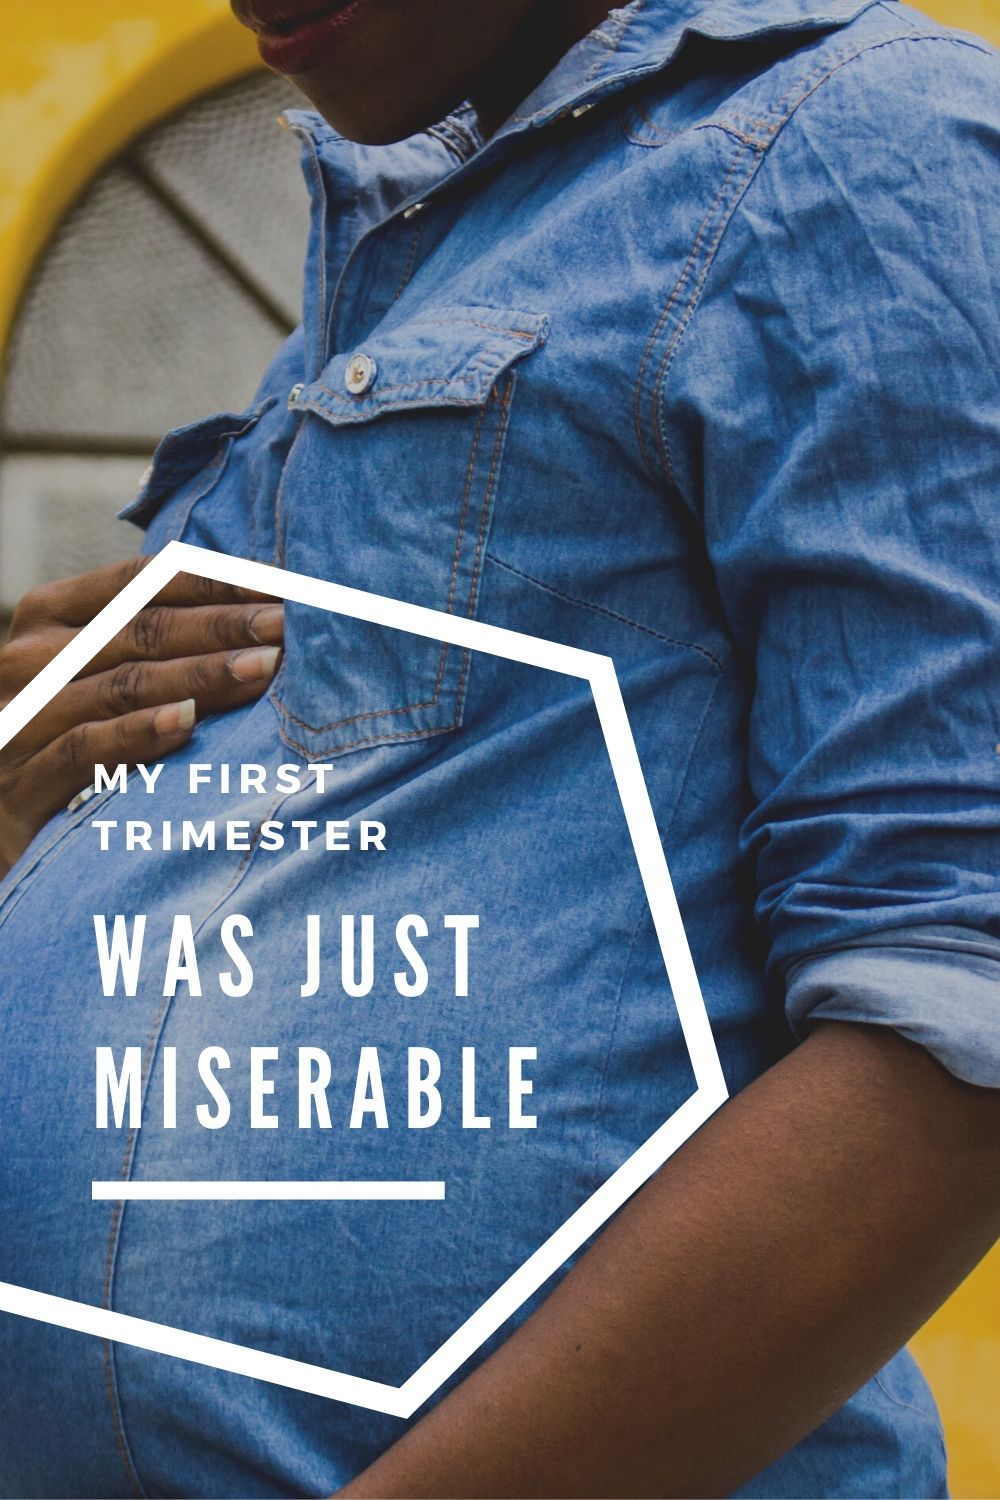 Alaskan lifestyle blogger, Kiss My Tulle, talks about her miserable first trimester. Her first trimester was MISERABLE. Just bad, bad, bad all around. Find out more!